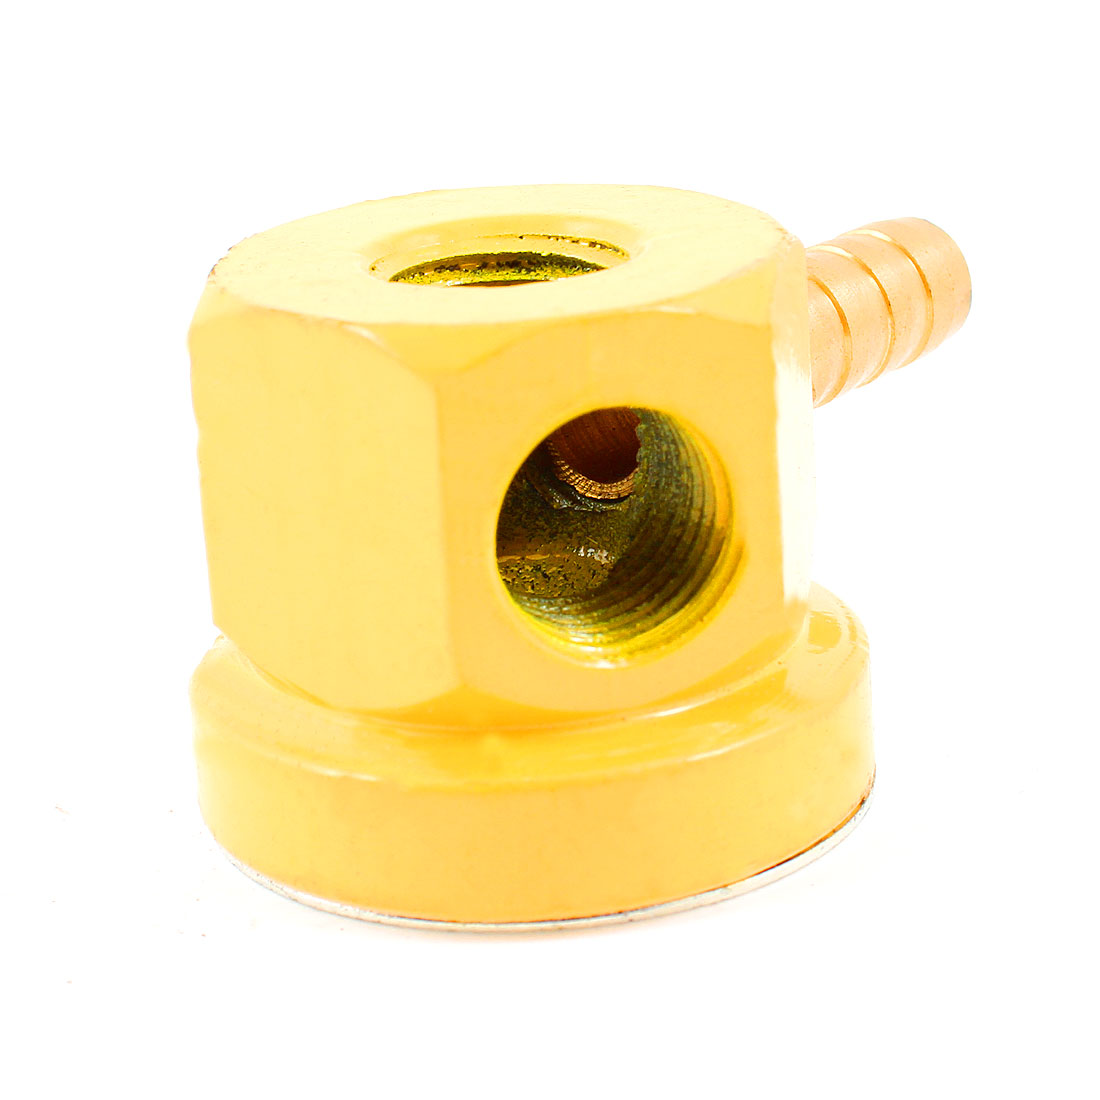 11mm Thread Diameter 2 Holes Round Nozzle Oil Coolant Pipe Base Yellow